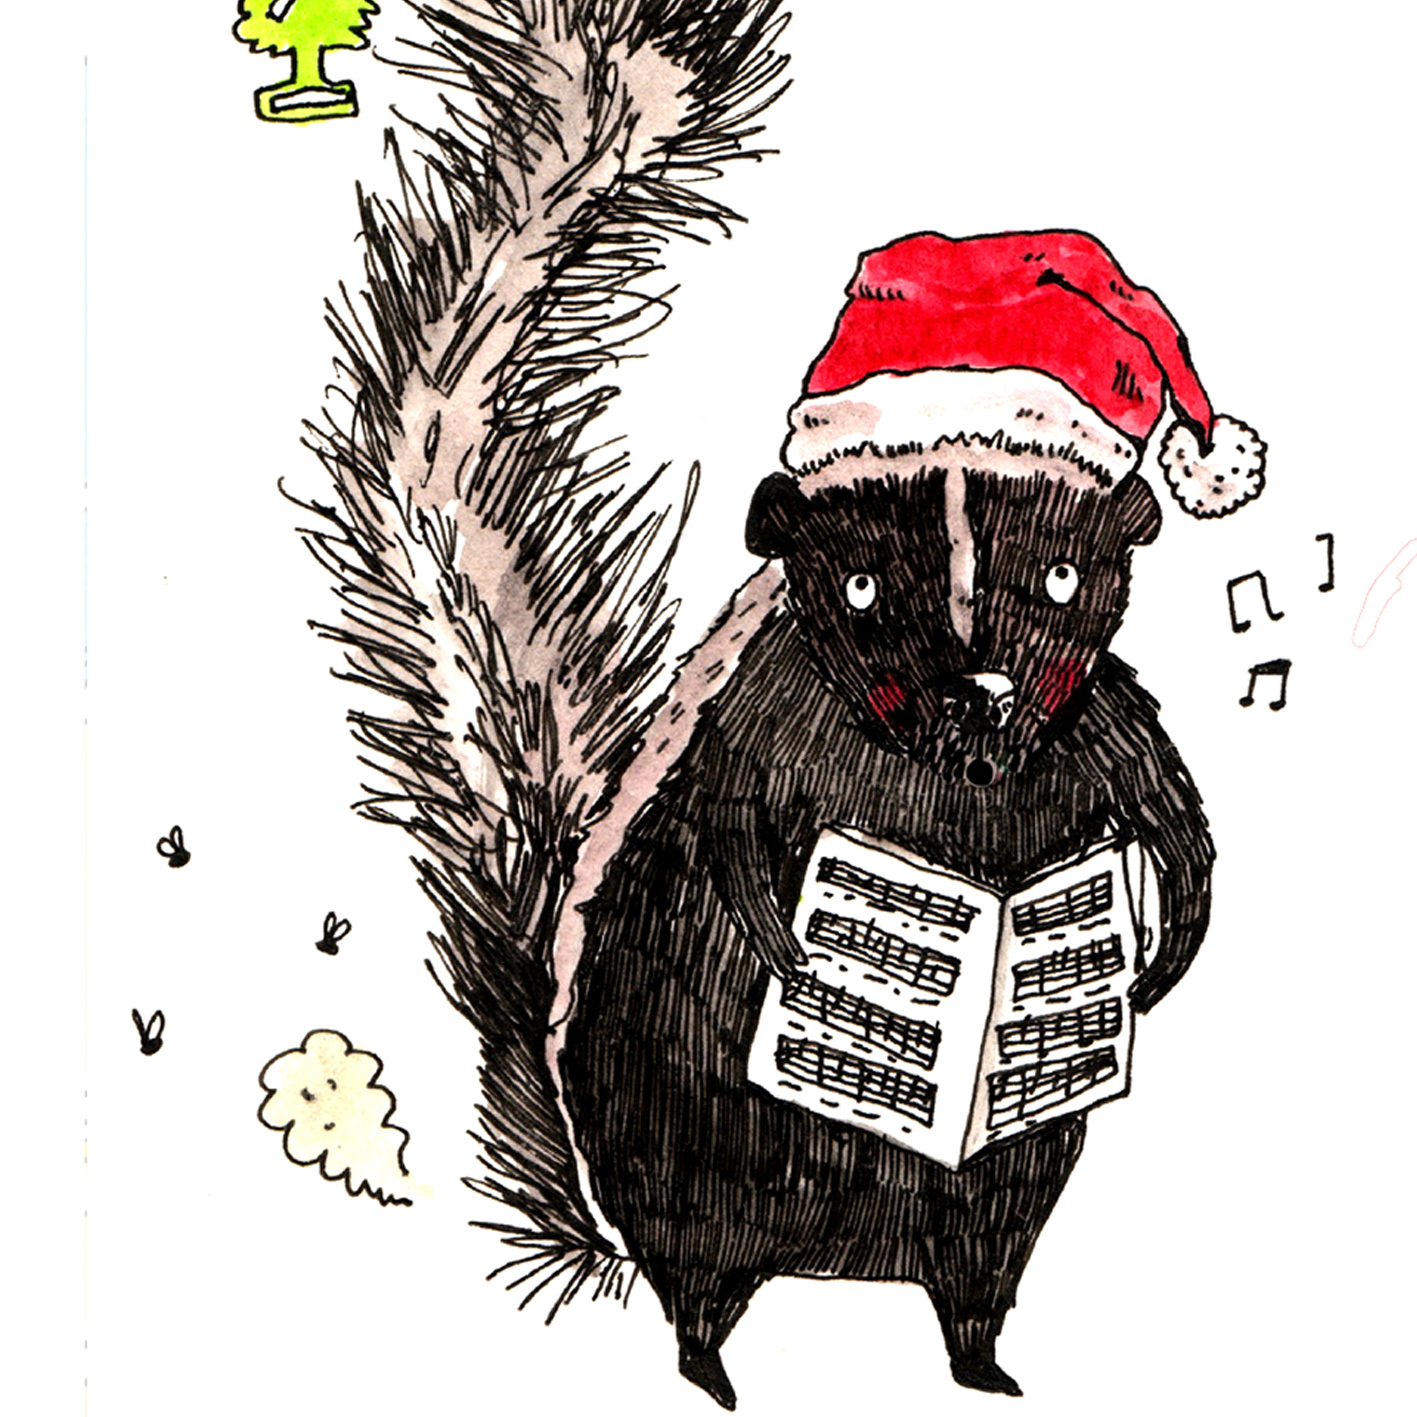 Jingle-Smells_-Skunk-joke-Christmas-card.-Funny-animal-Christmas-card_CH04_CU